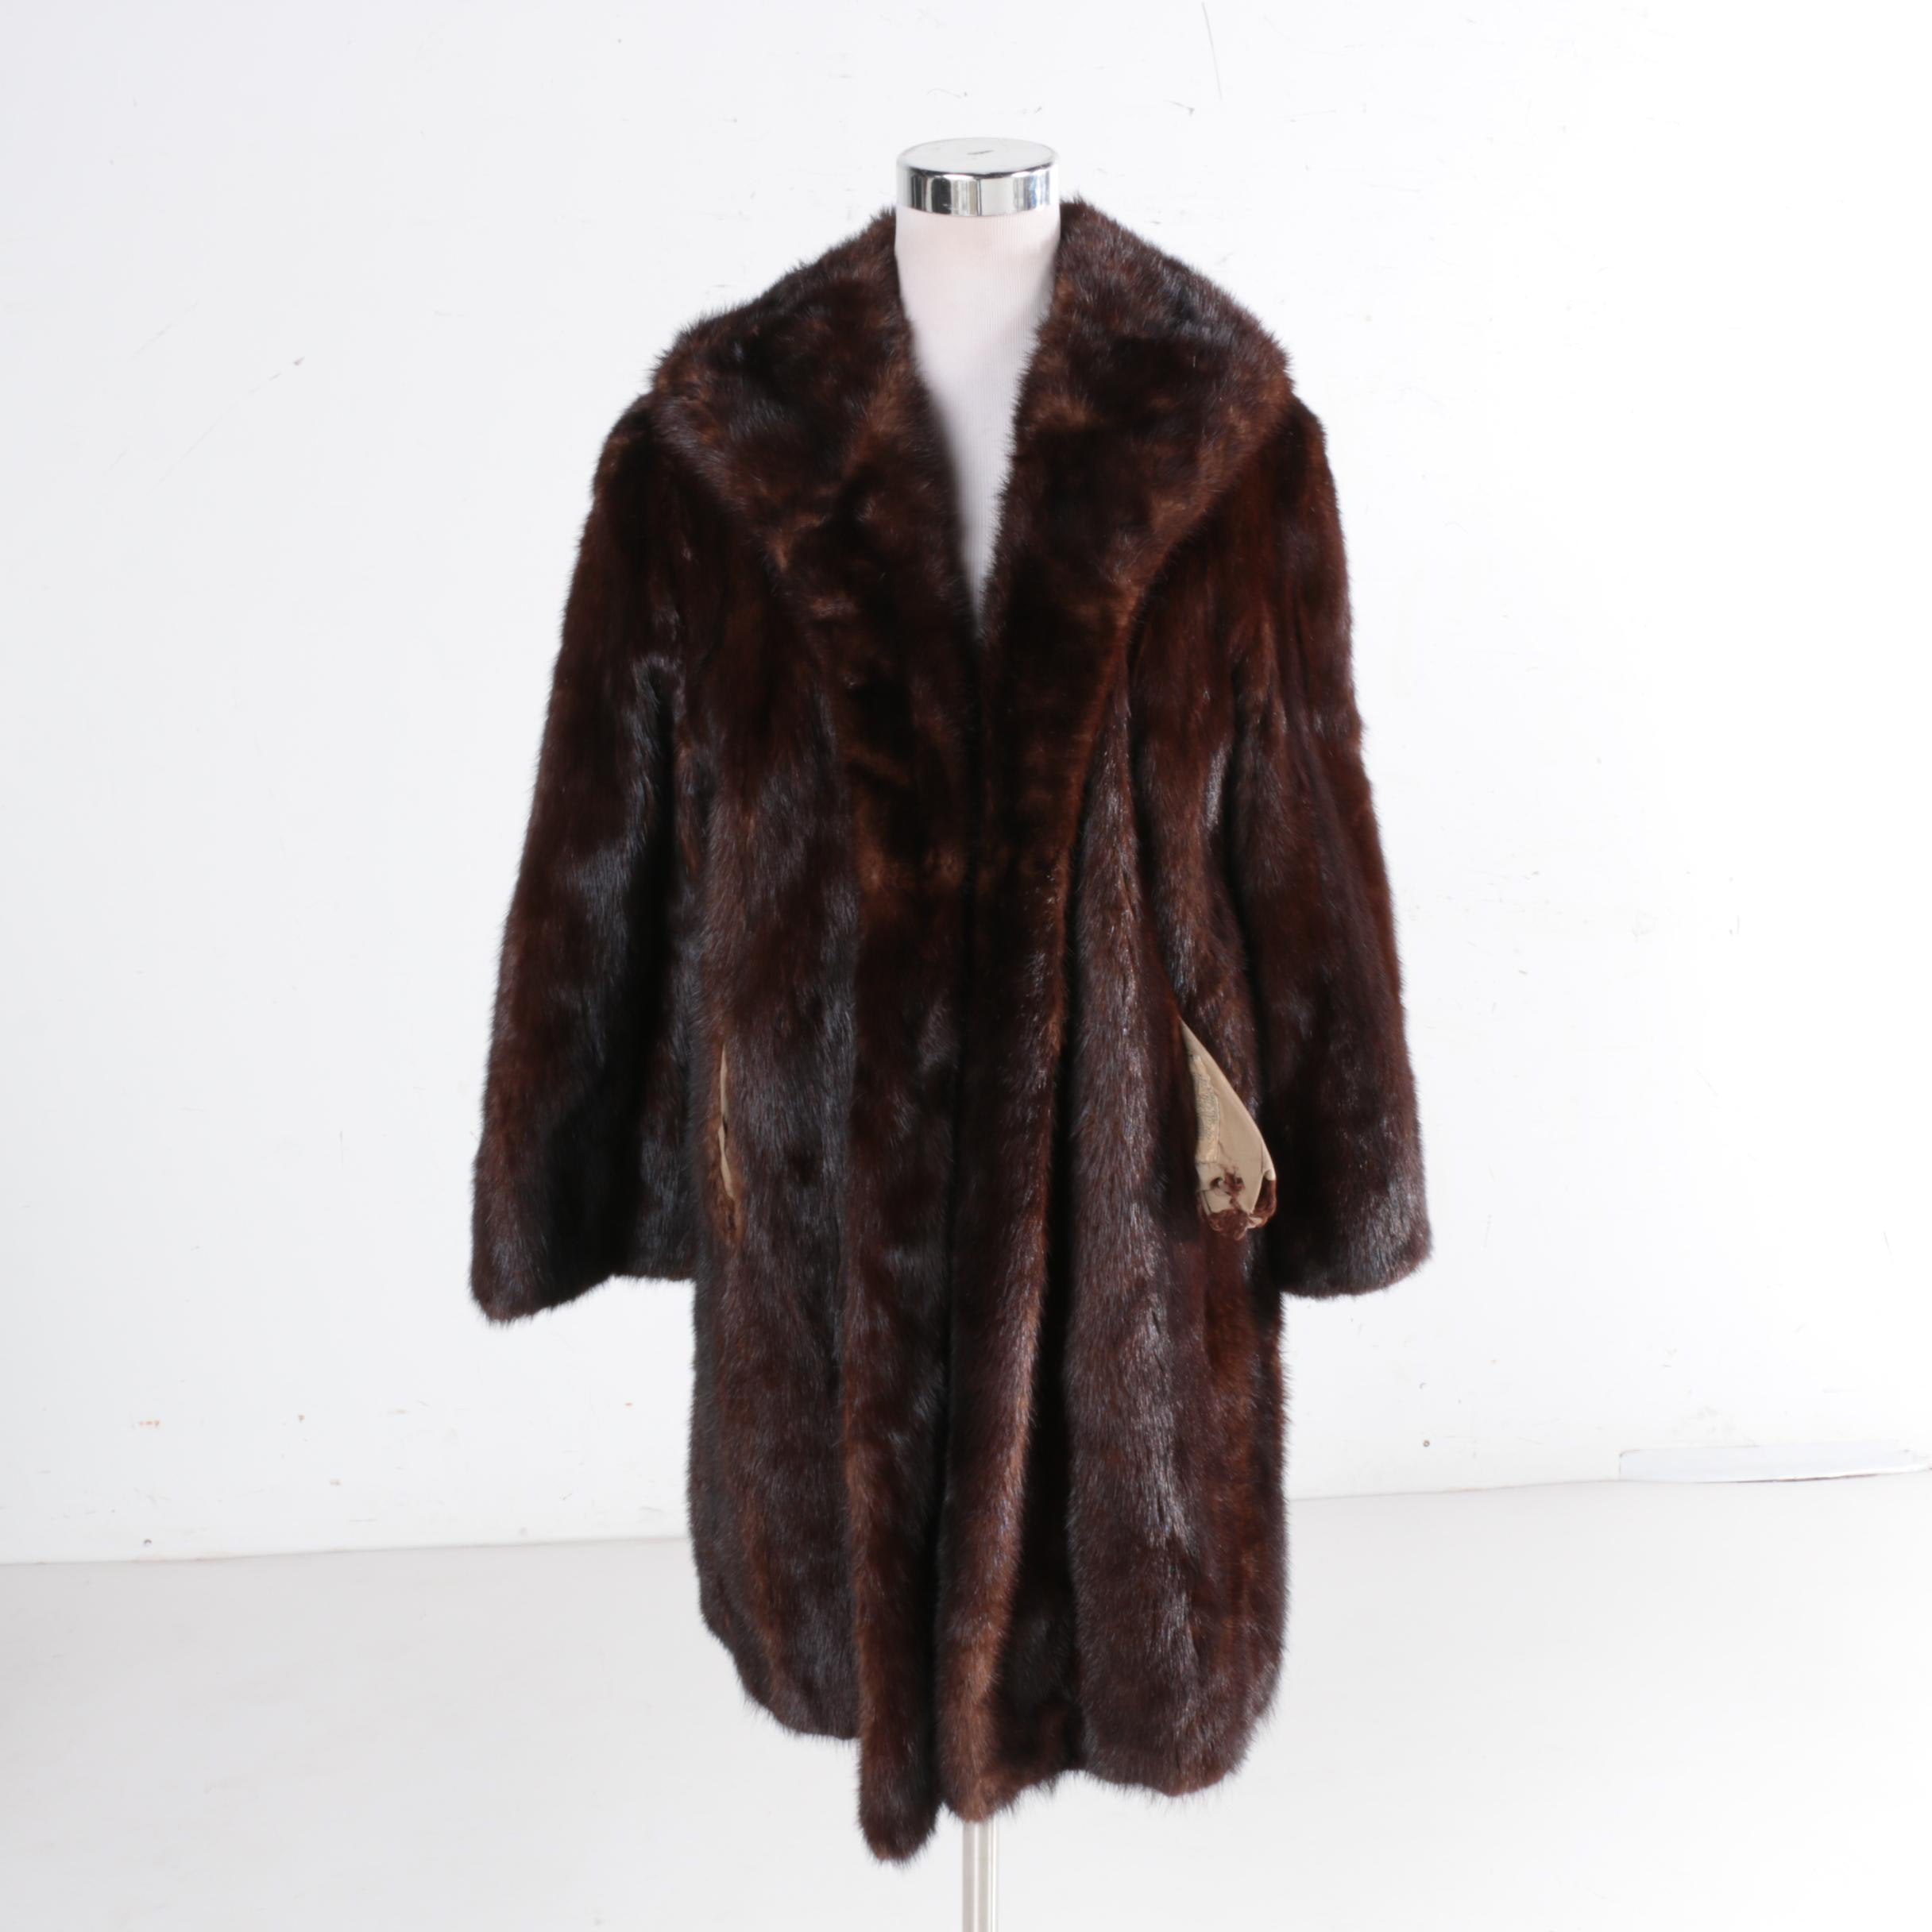 Vintage Dyed Chocolate Brown Mink Fur Coat